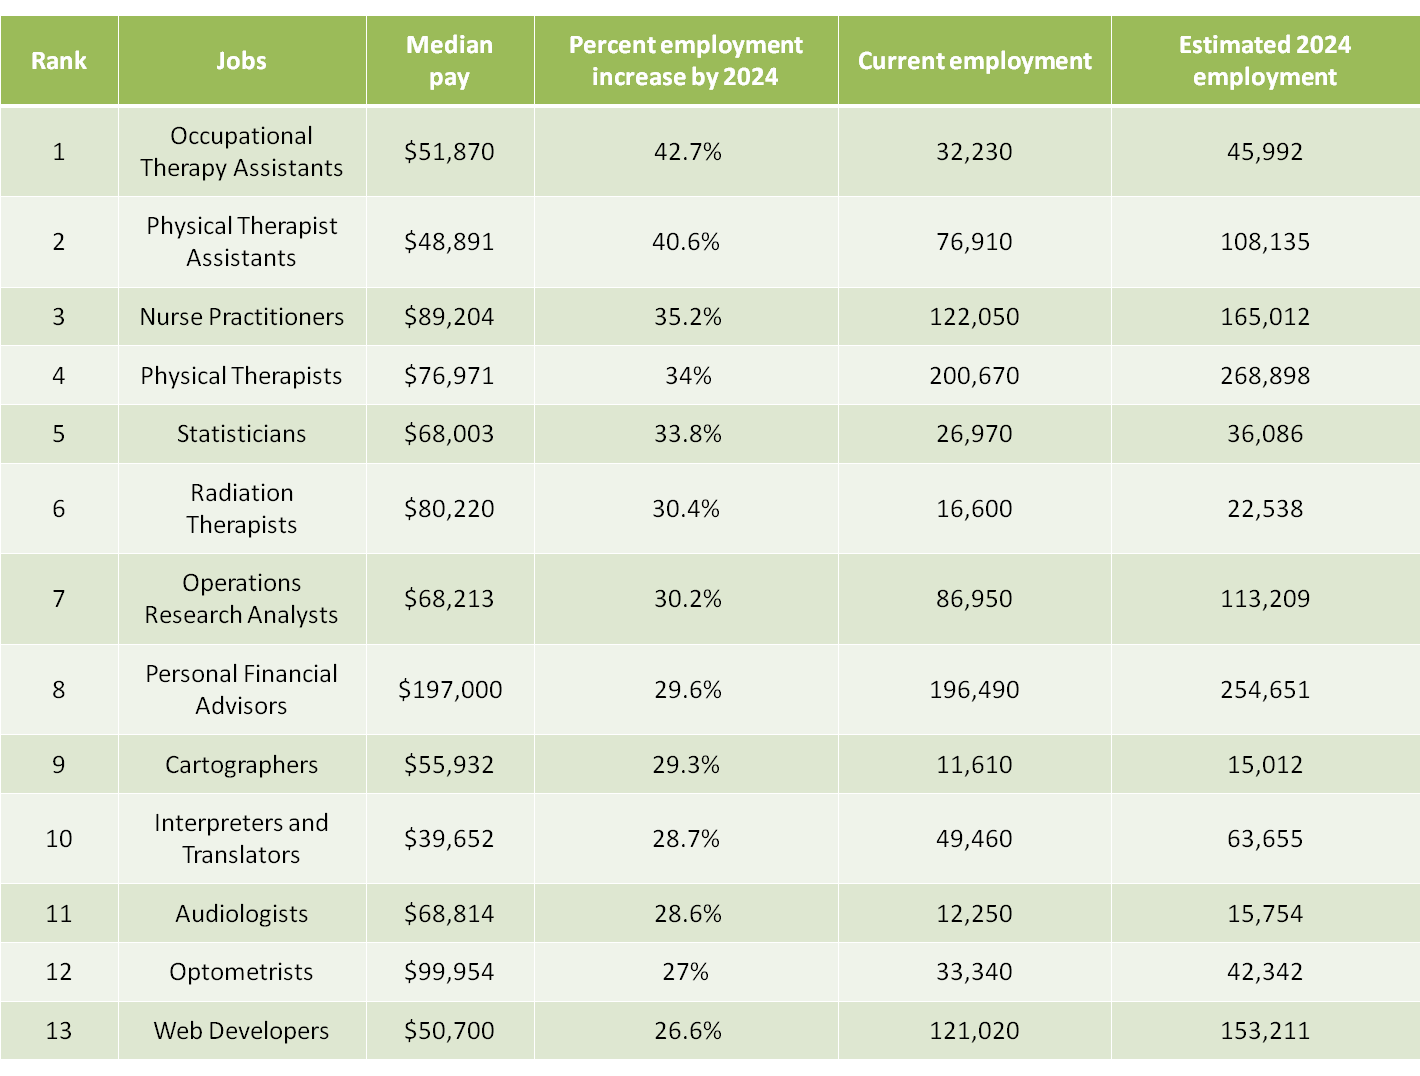 Careers with the Highest Projected Employment Growth